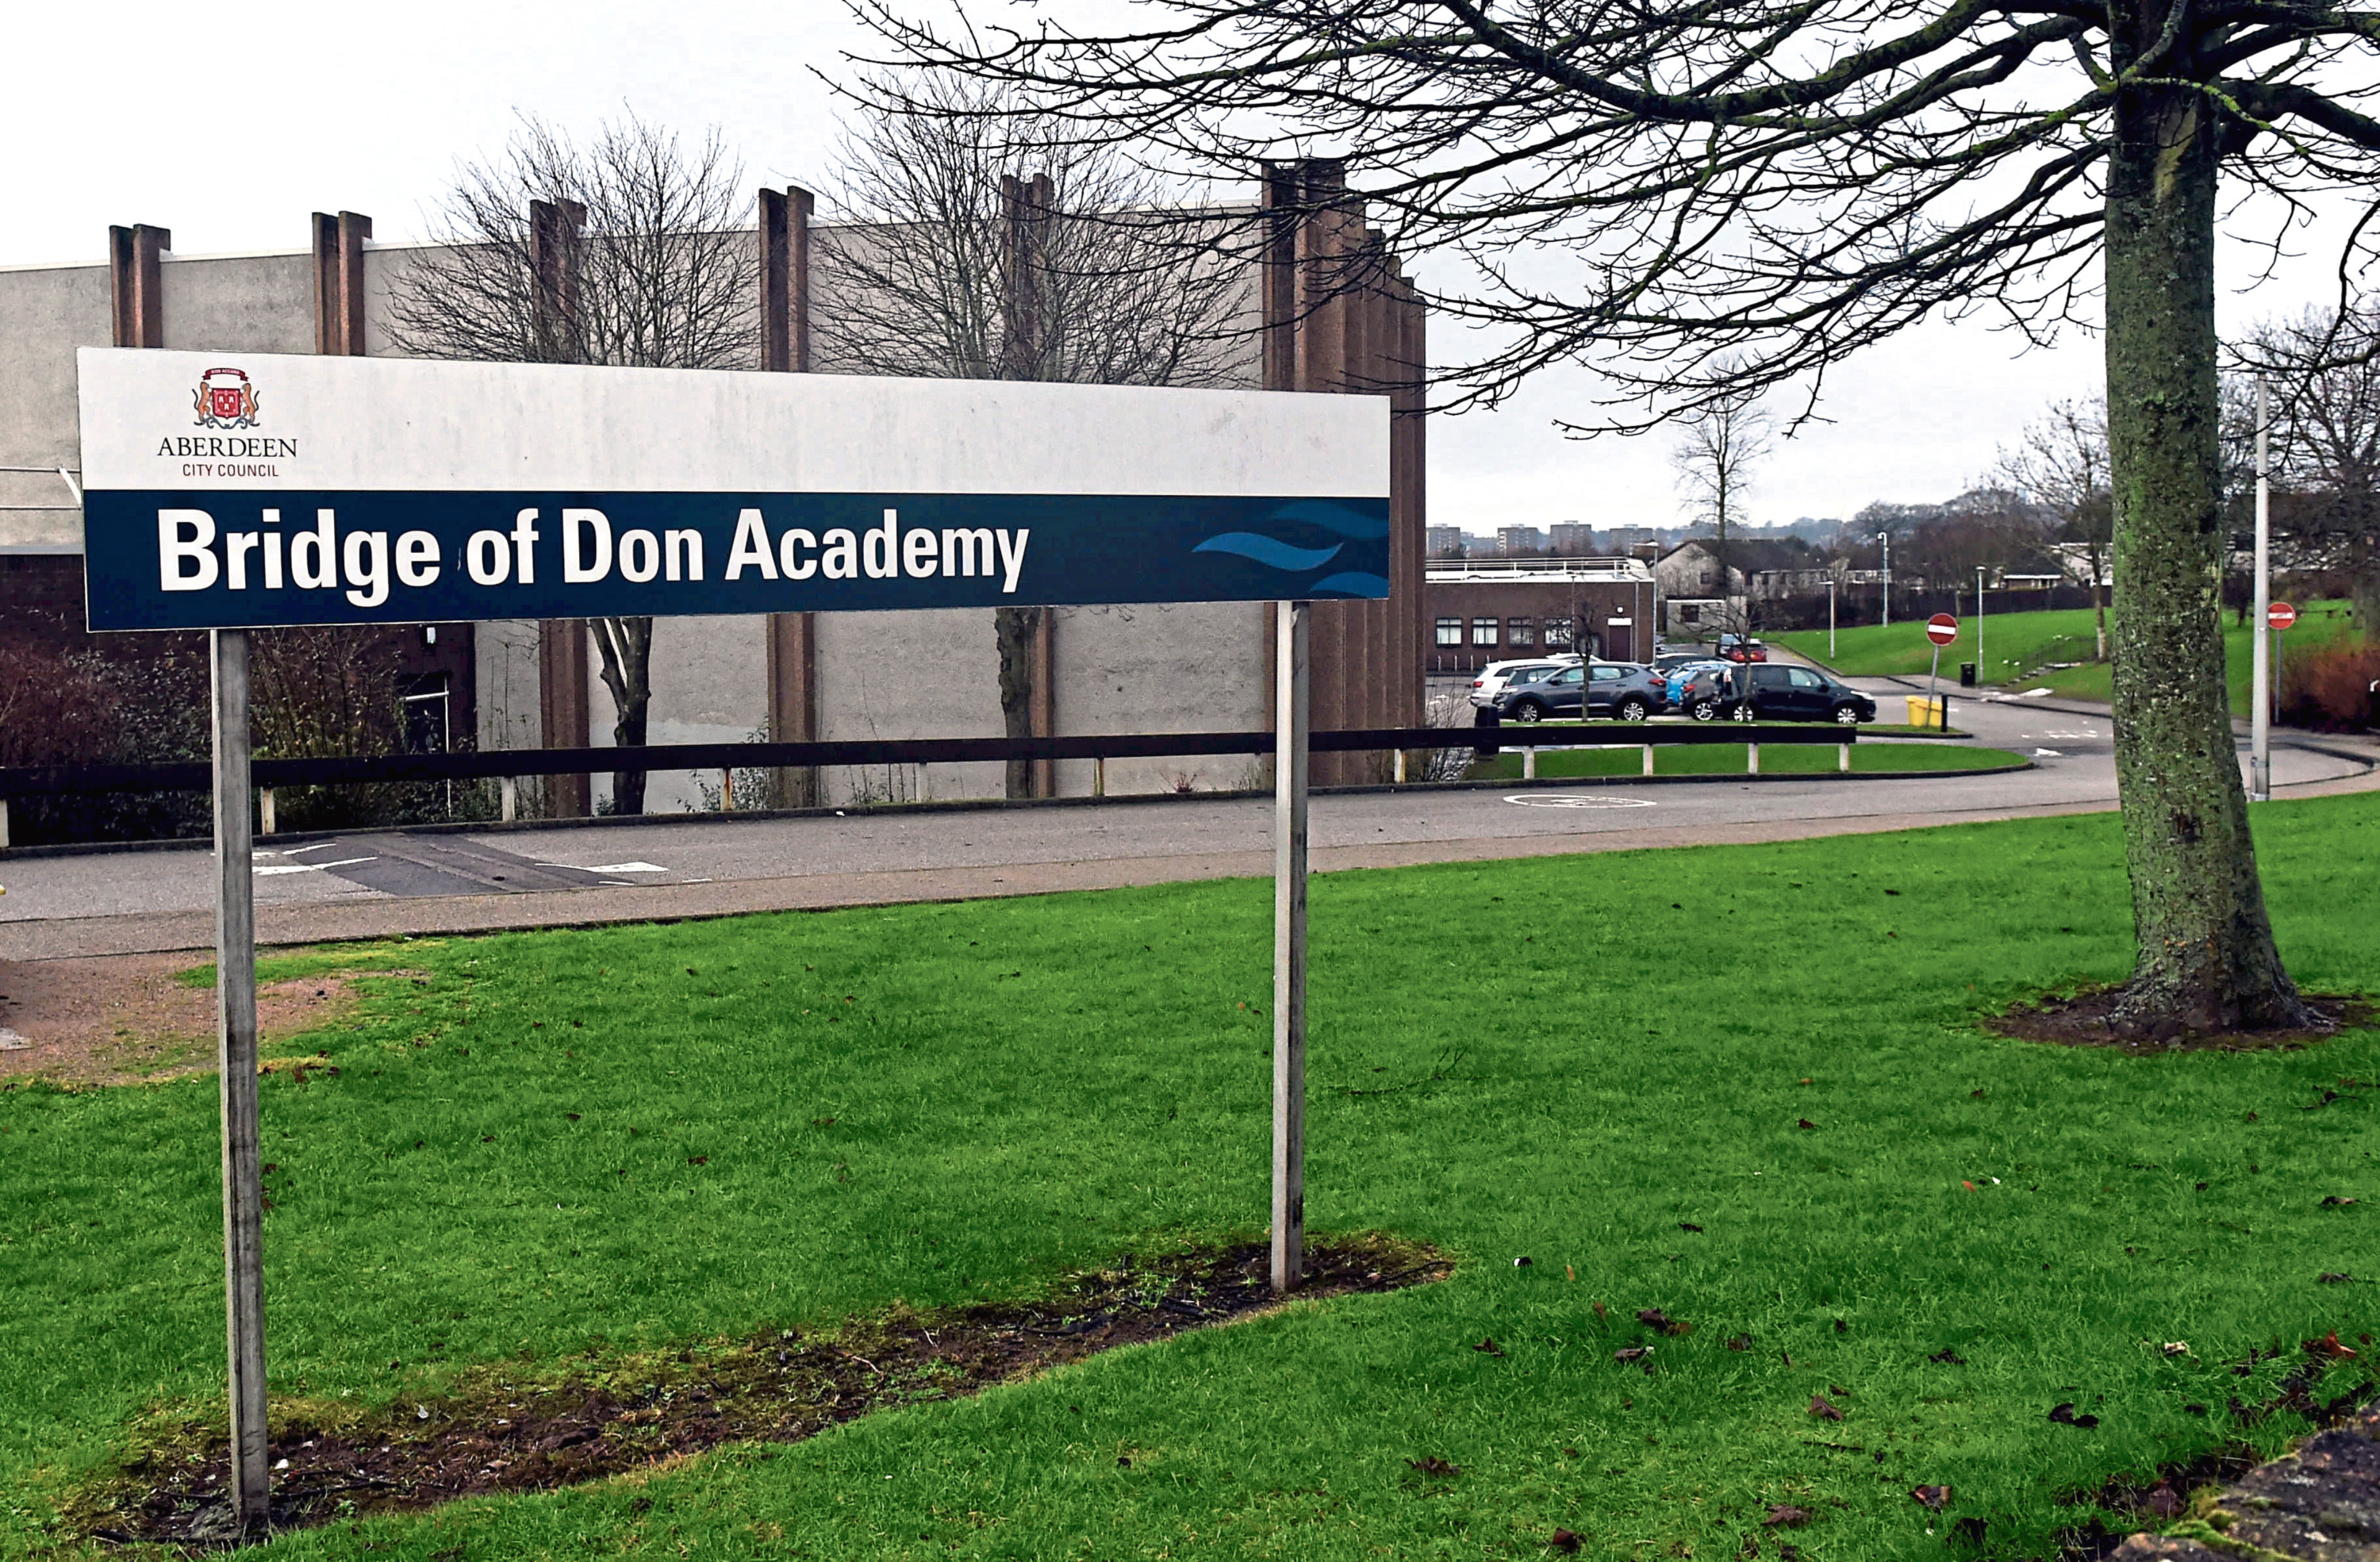 A case of coronavirus has been recorded at Bridge of Don Academy